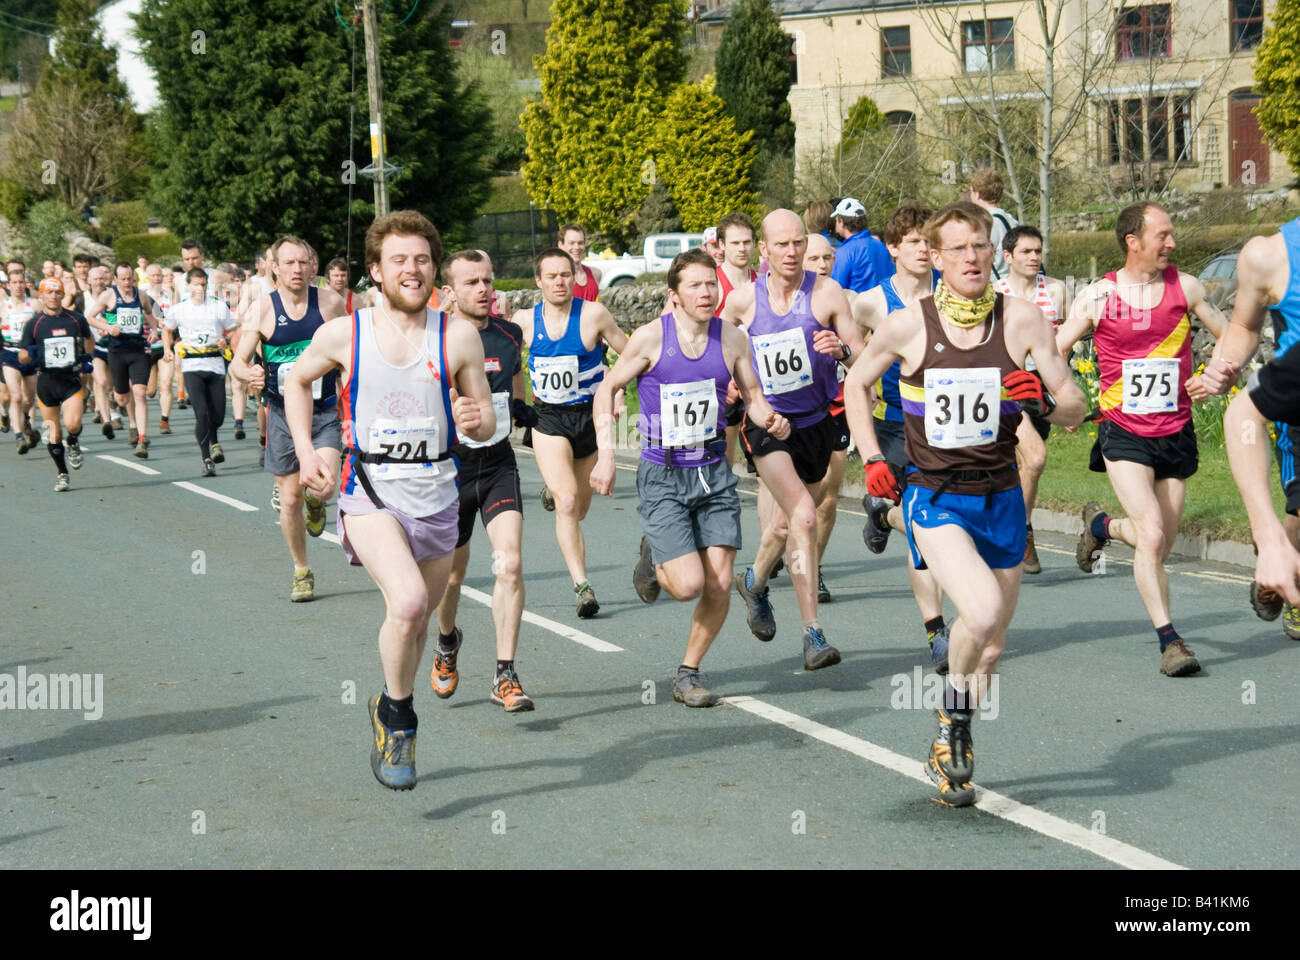 People competing in the three peaks long distance race challenge in Yorkshire England - Stock Image